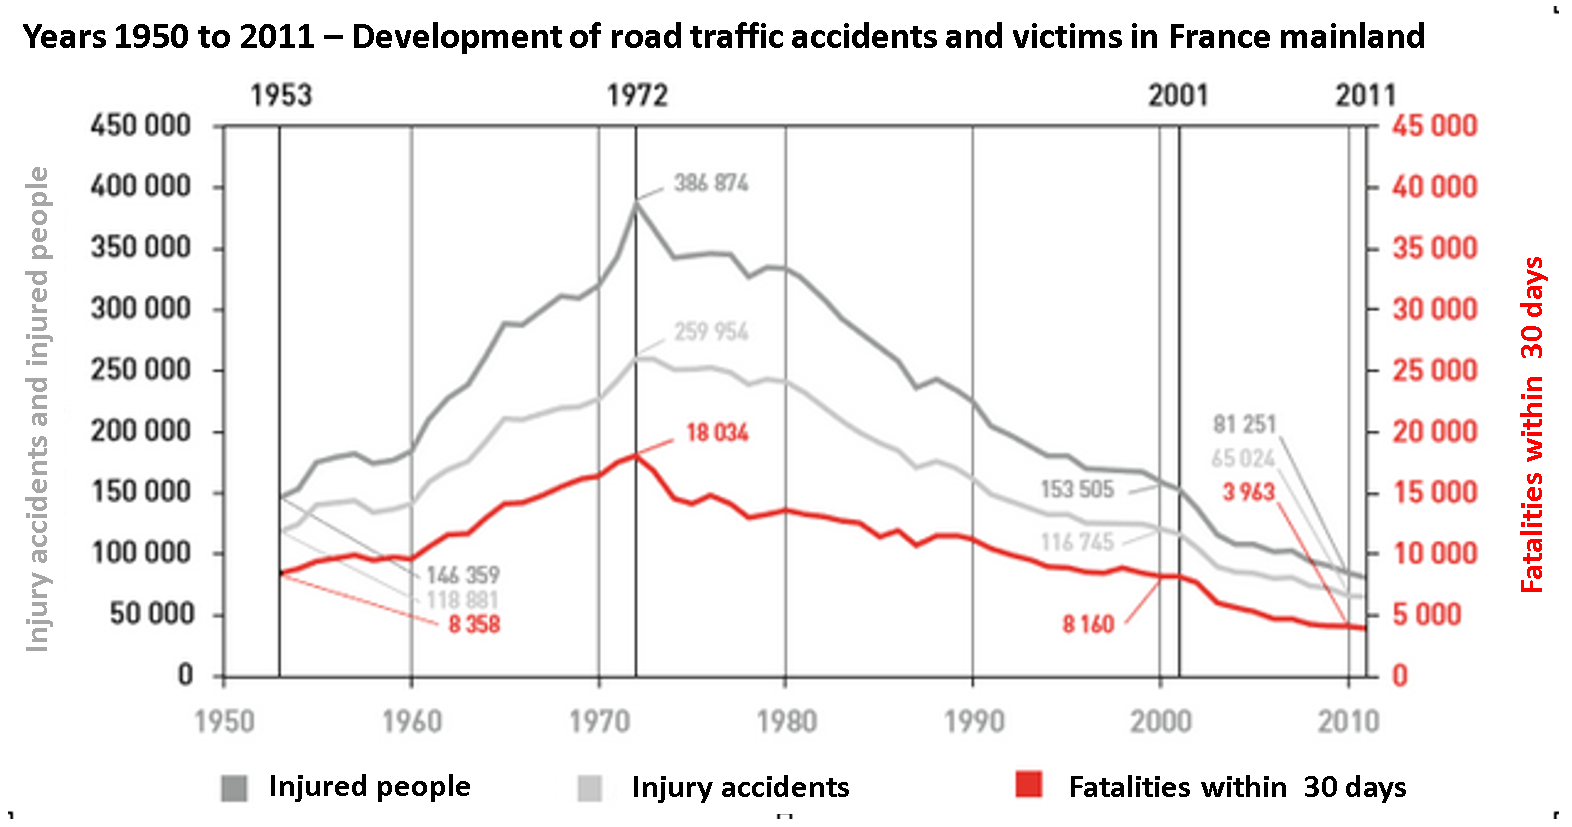 1950-2011 development of road traffic crashes and injuries